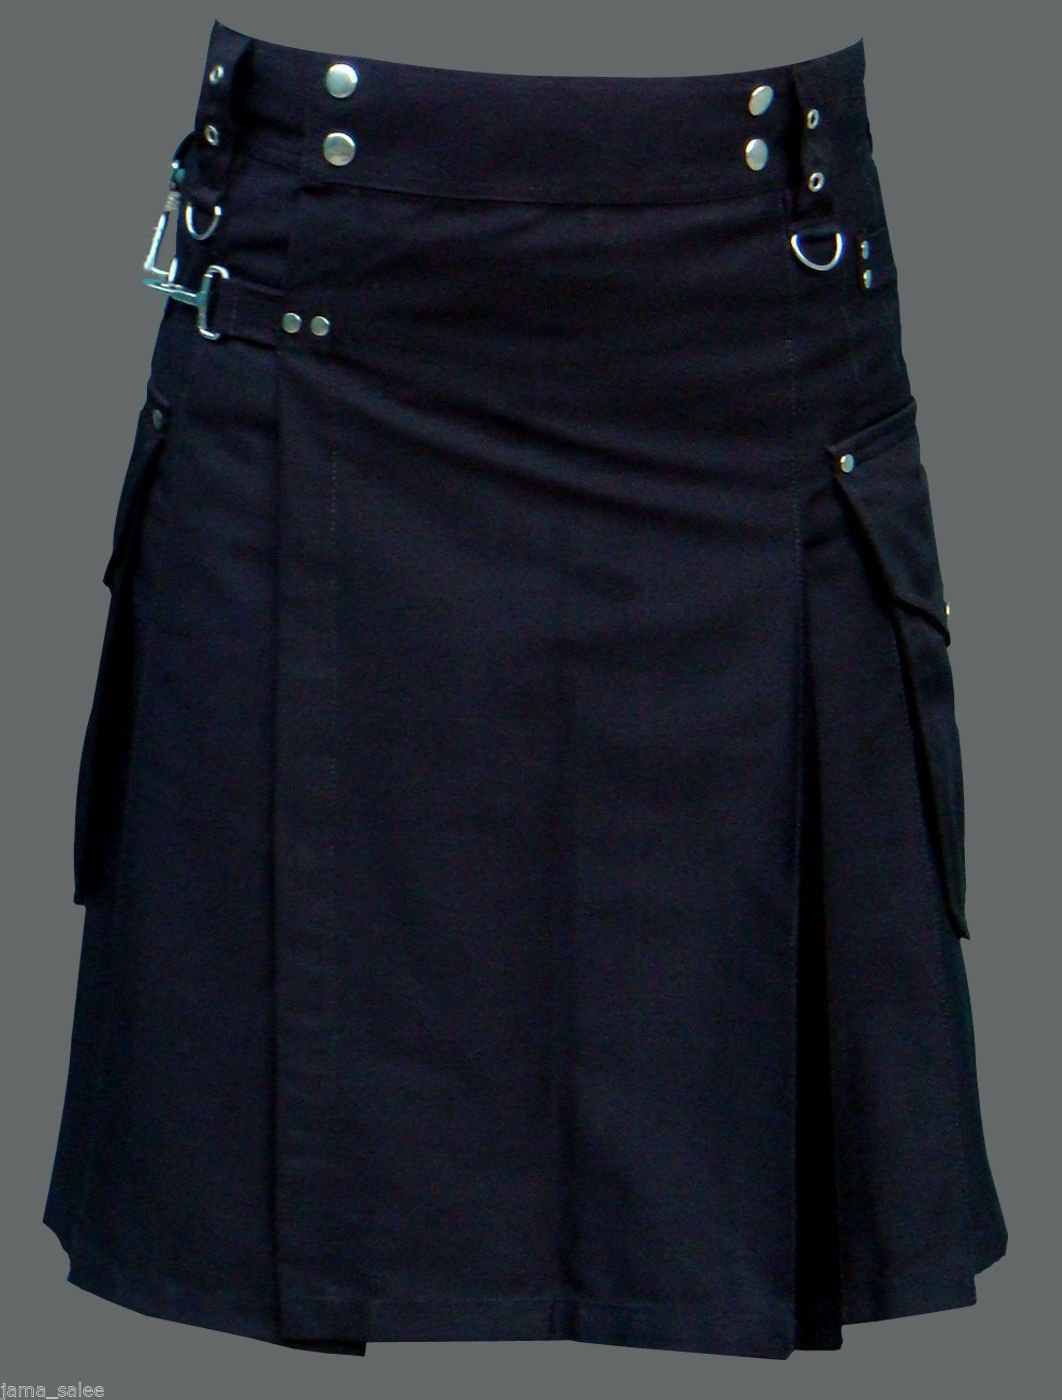 Men 60 Waist Handmade Black Deluxe Utility Kilt 100% Cotton With Cargo Pockets